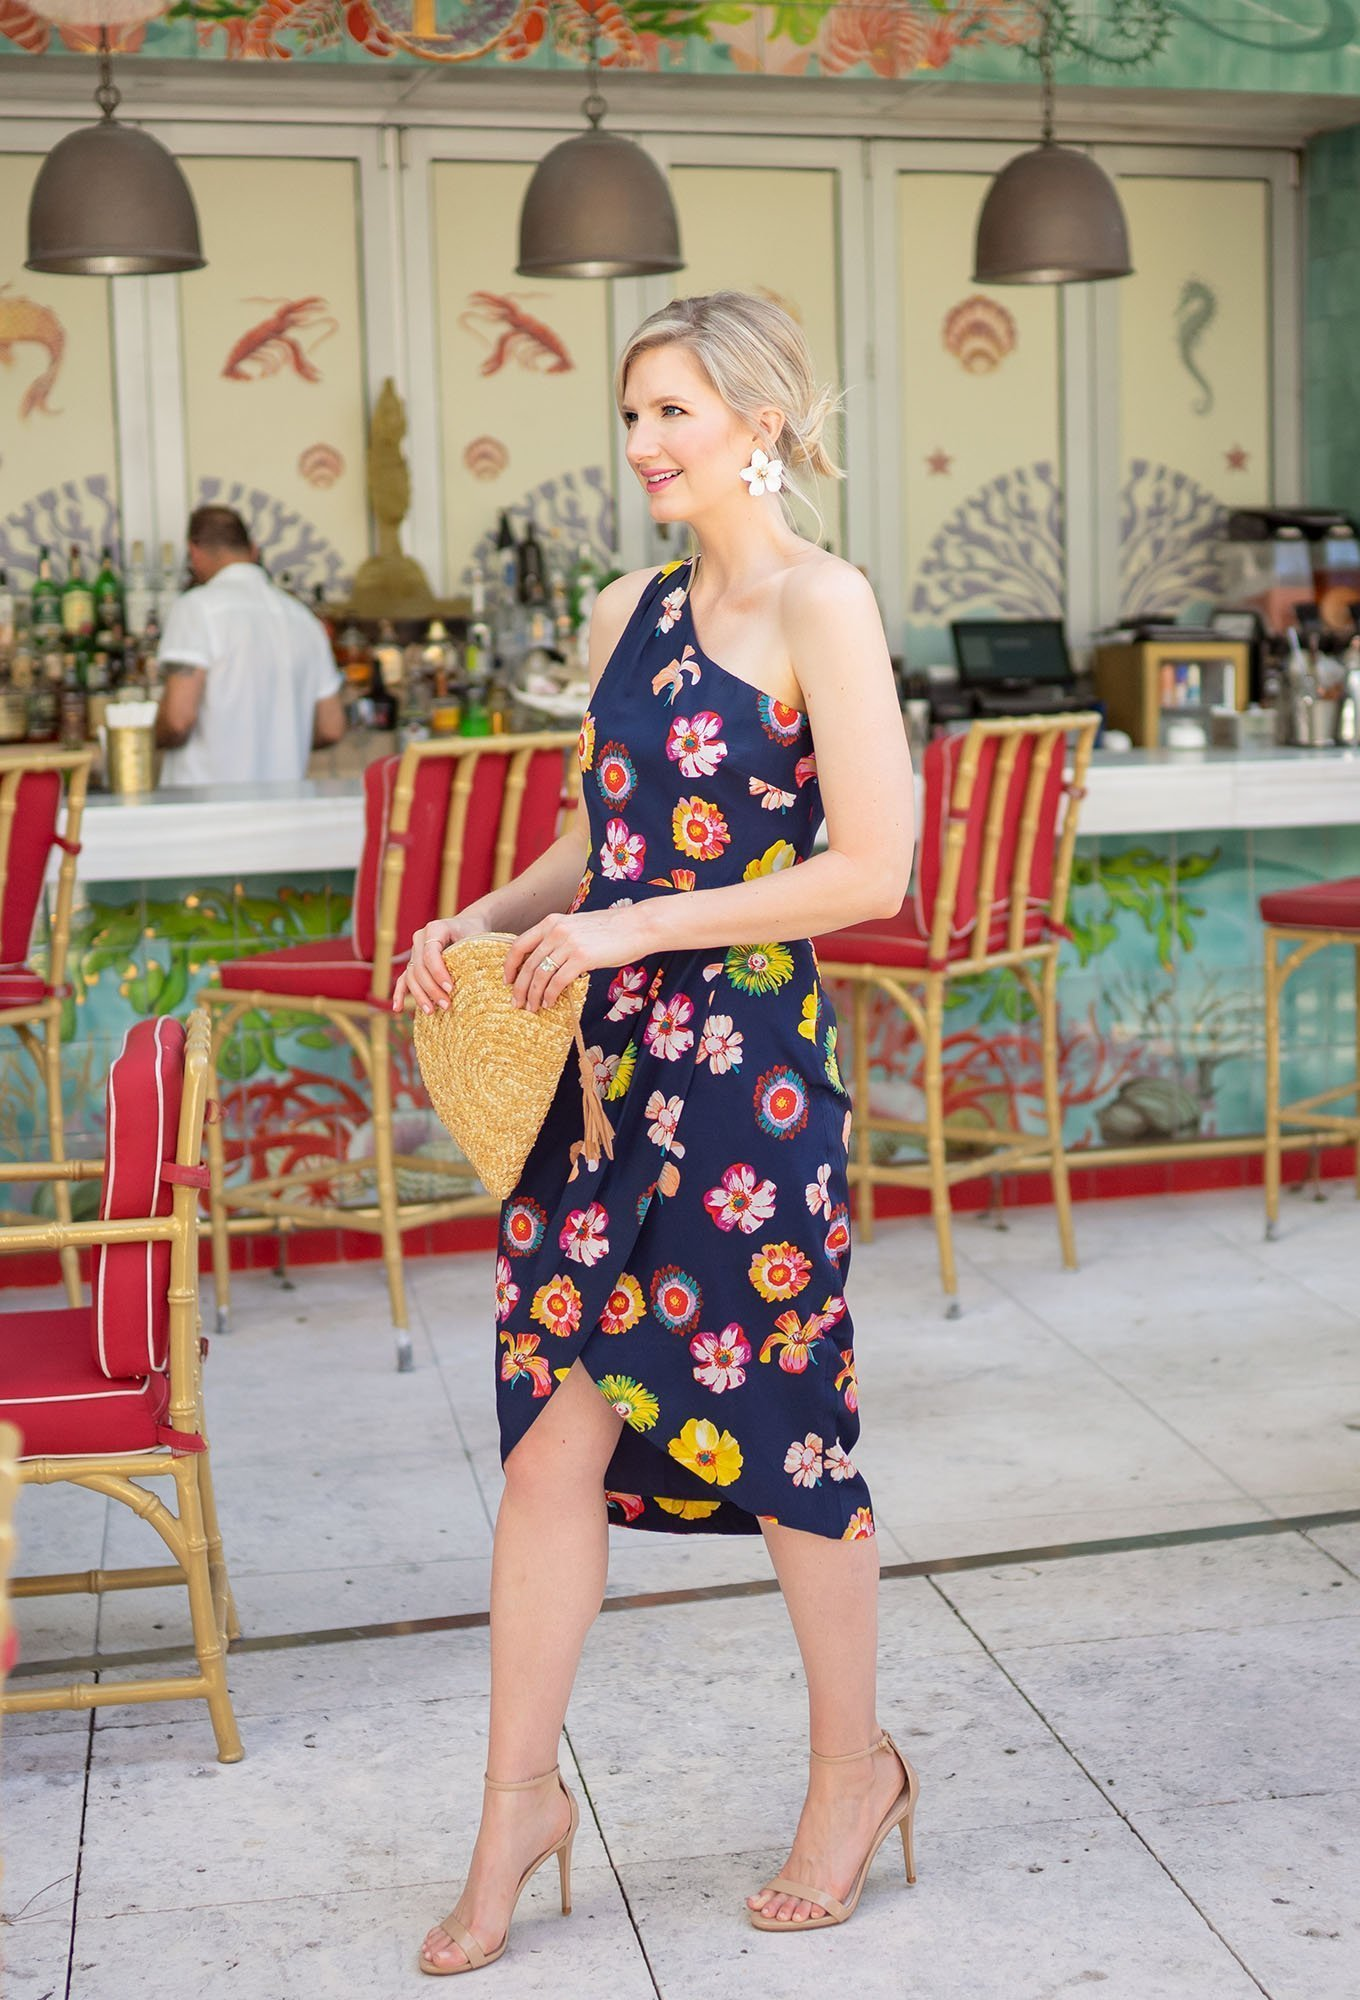 Ashley Brooke wearing Floral One Shoulder Dress in Miami